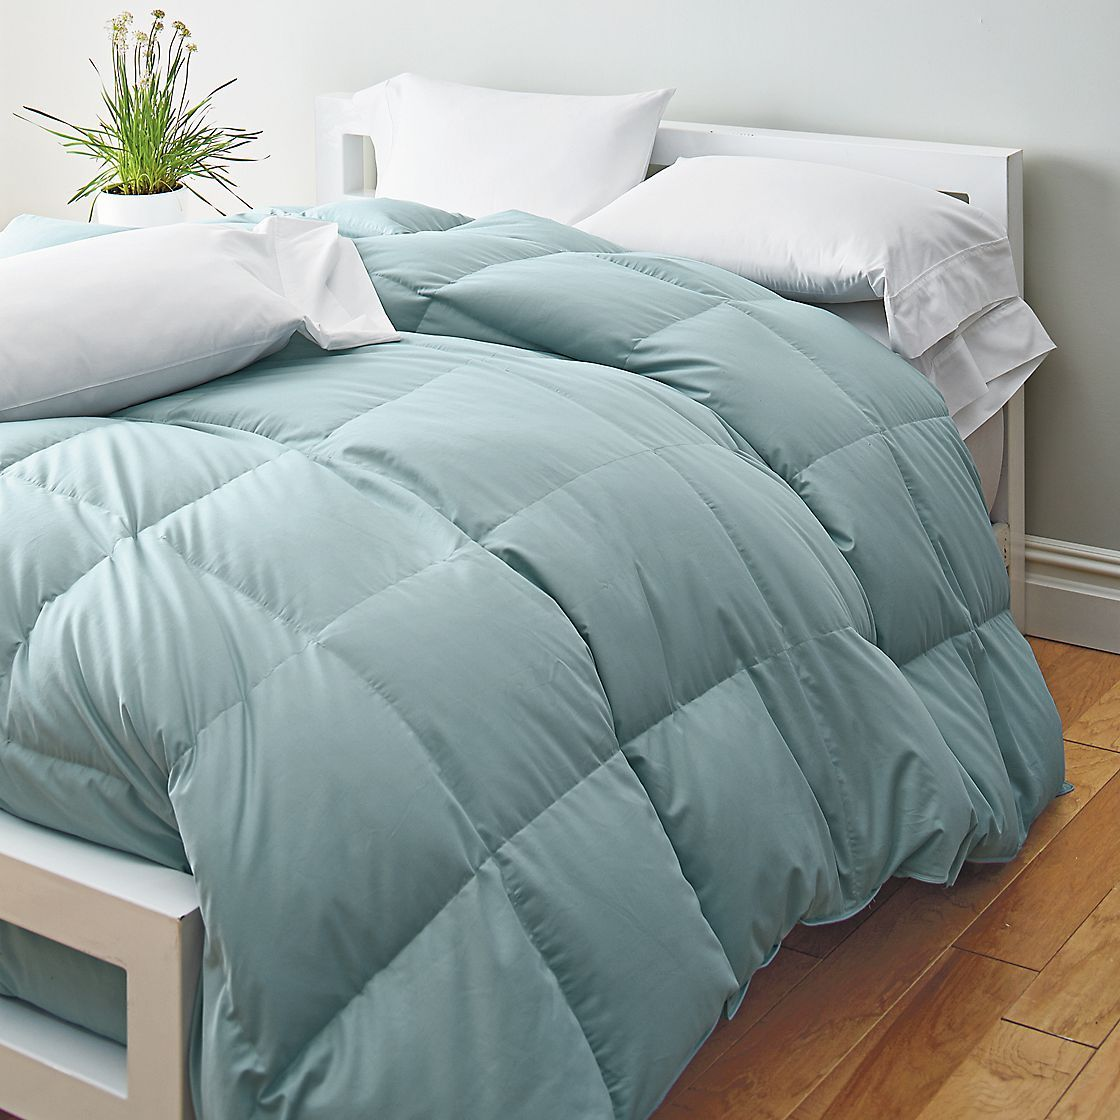 down vs. down alternative comforter | house | Pinterest ... : quilt vs comforter vs duvet - Adamdwight.com